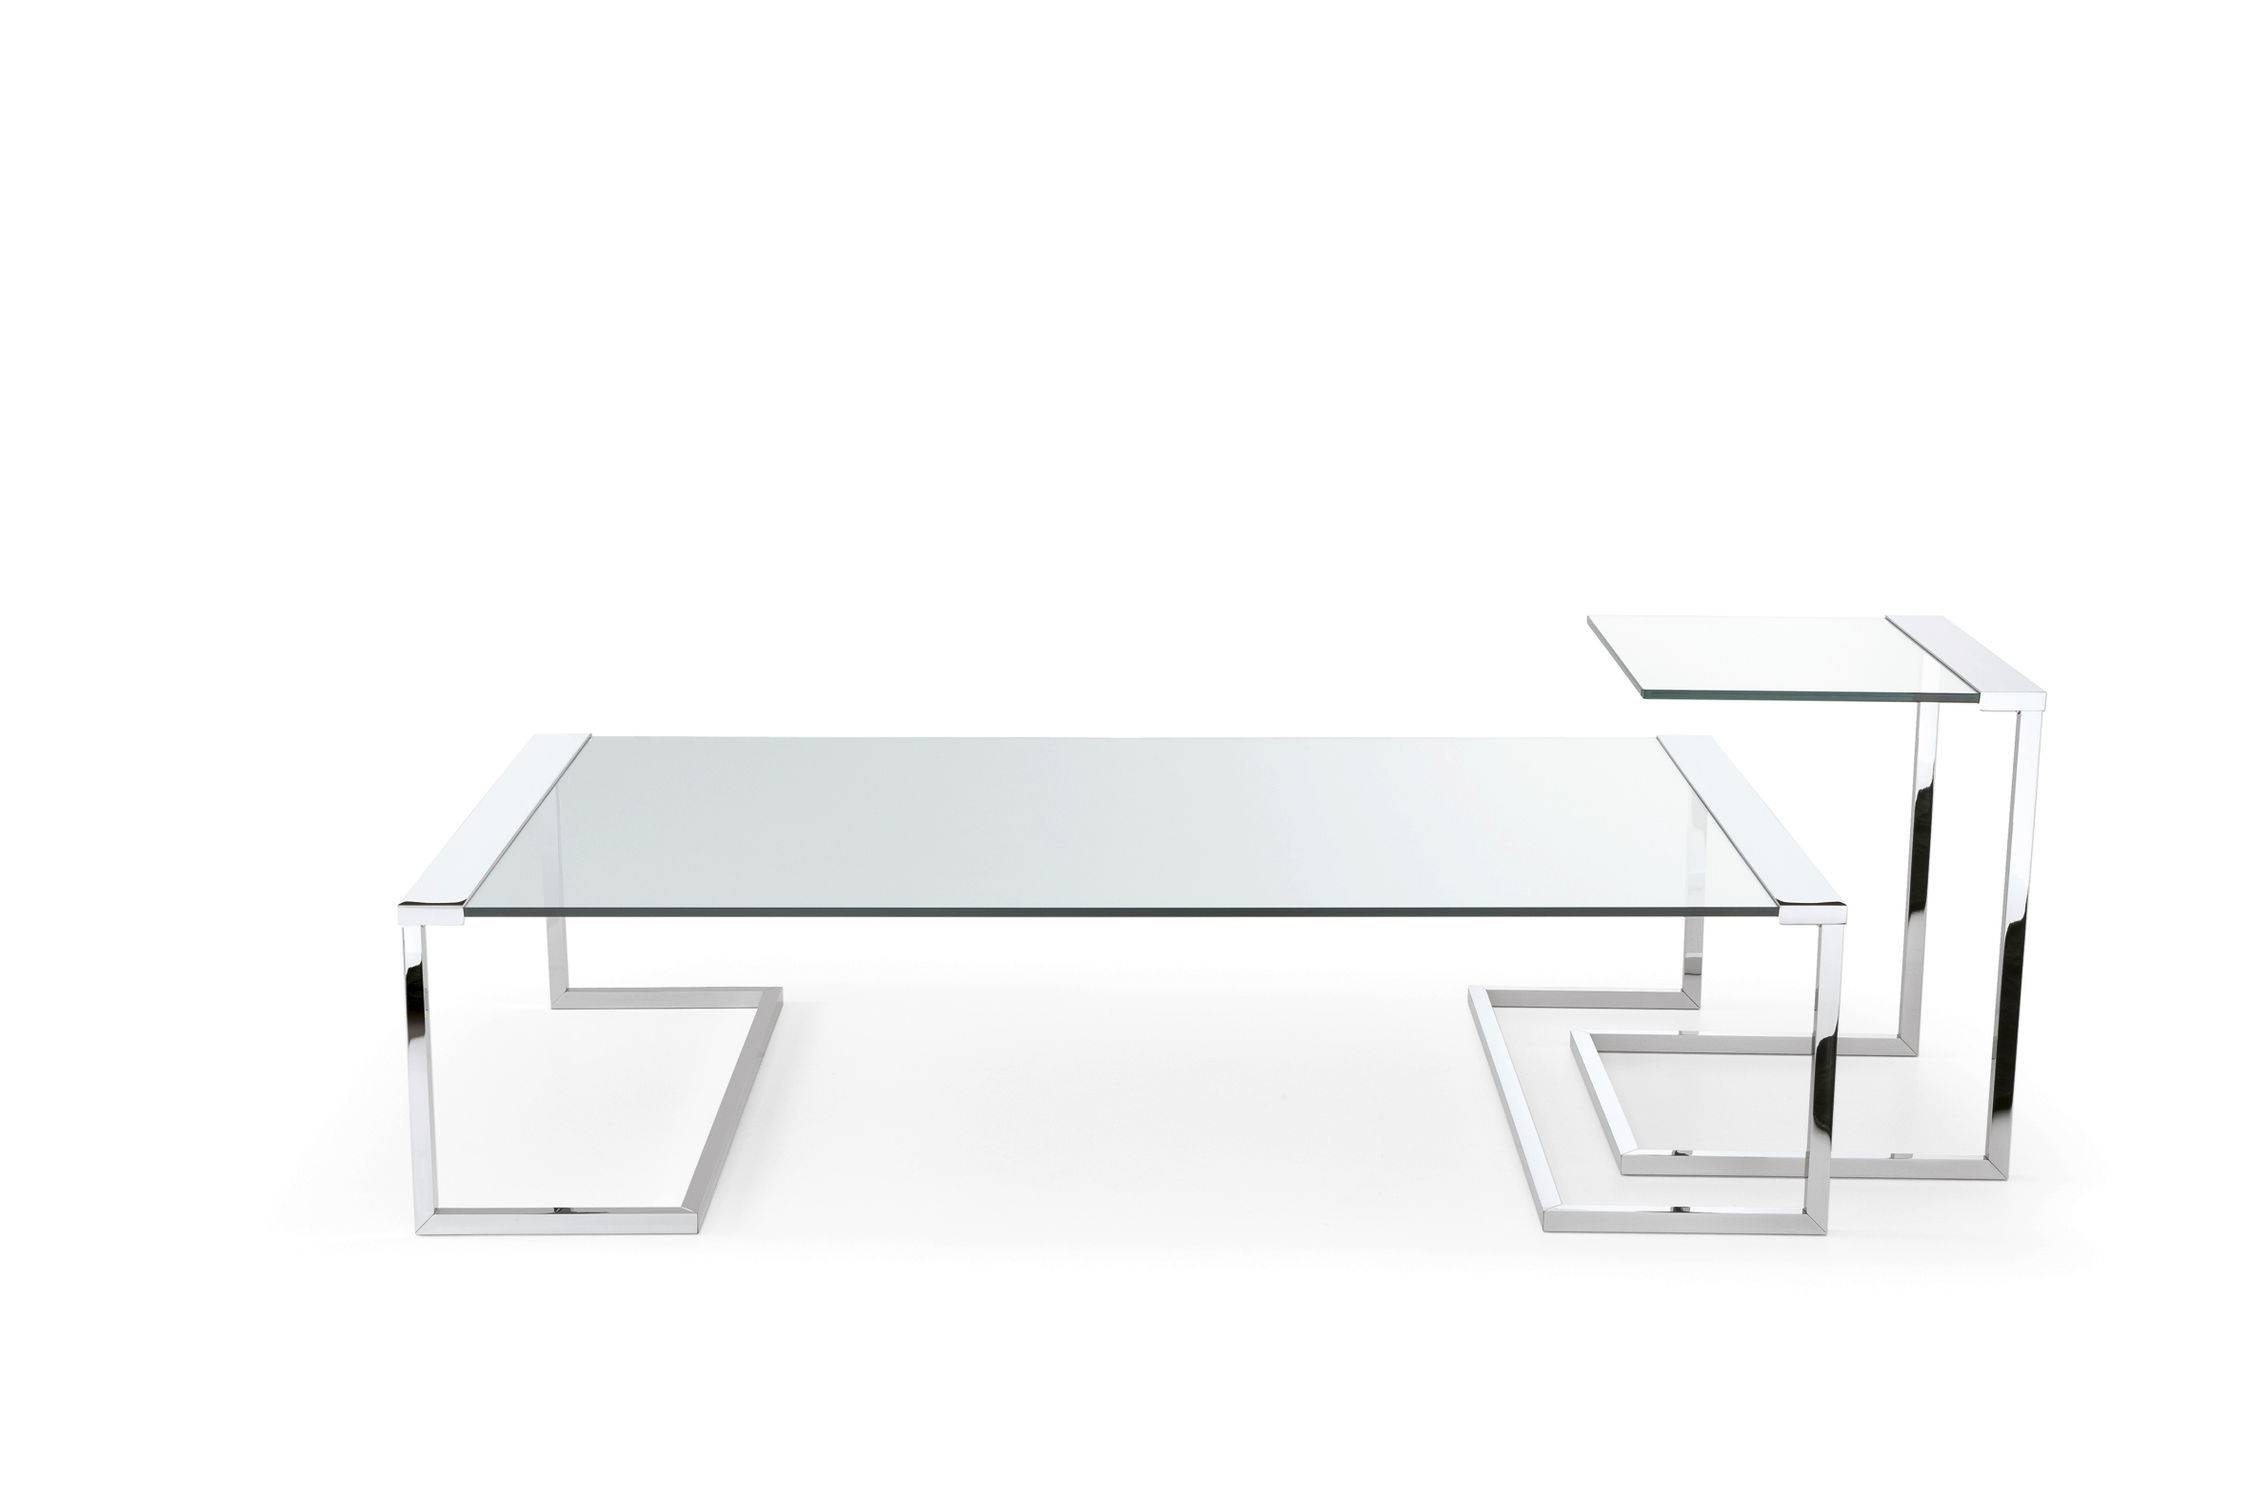 Metal And Glass Coffee Tables - Jericho Mafjar Project throughout Glass And Metal Coffee Tables (Image 22 of 30)